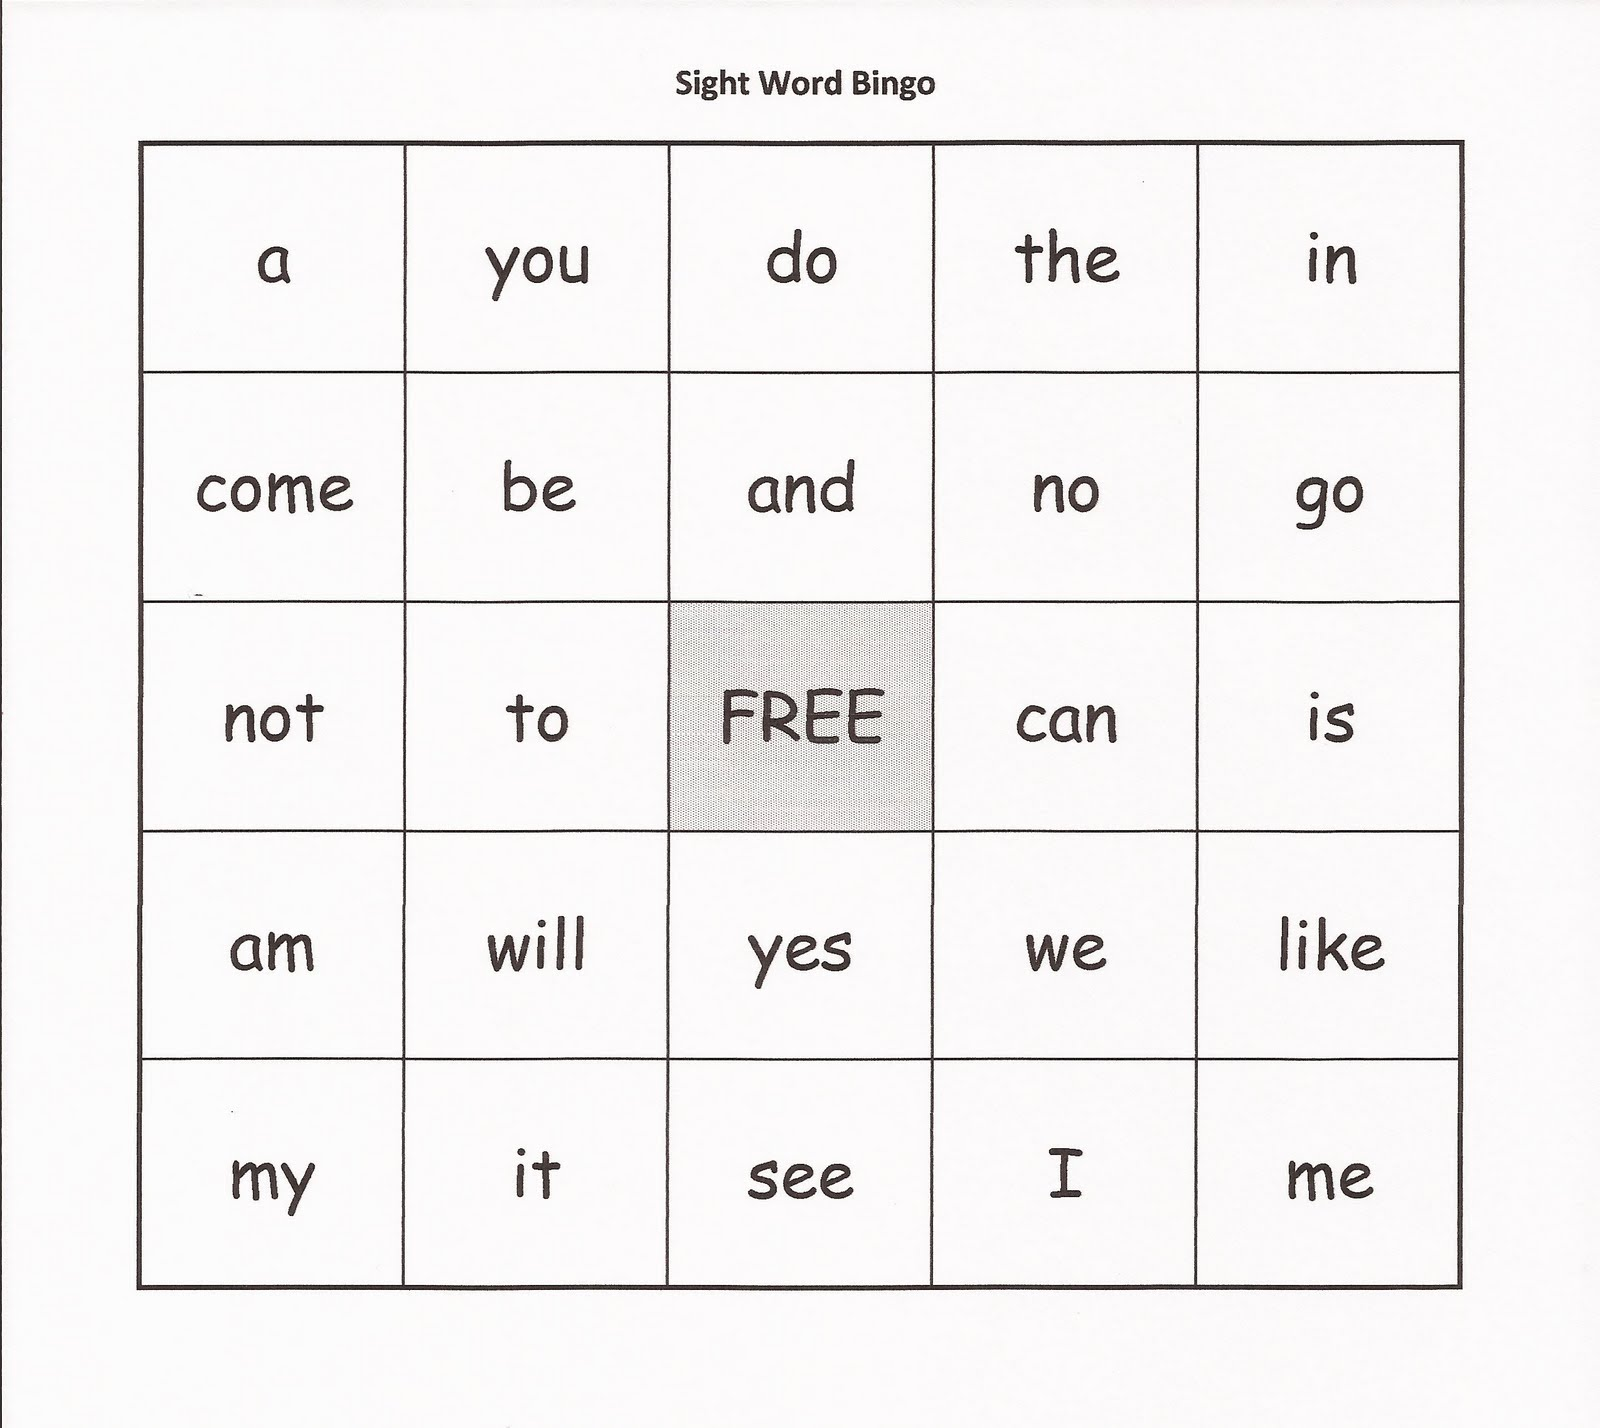 Relentlessly Fun Deceptively Educational Sight Word Bingo